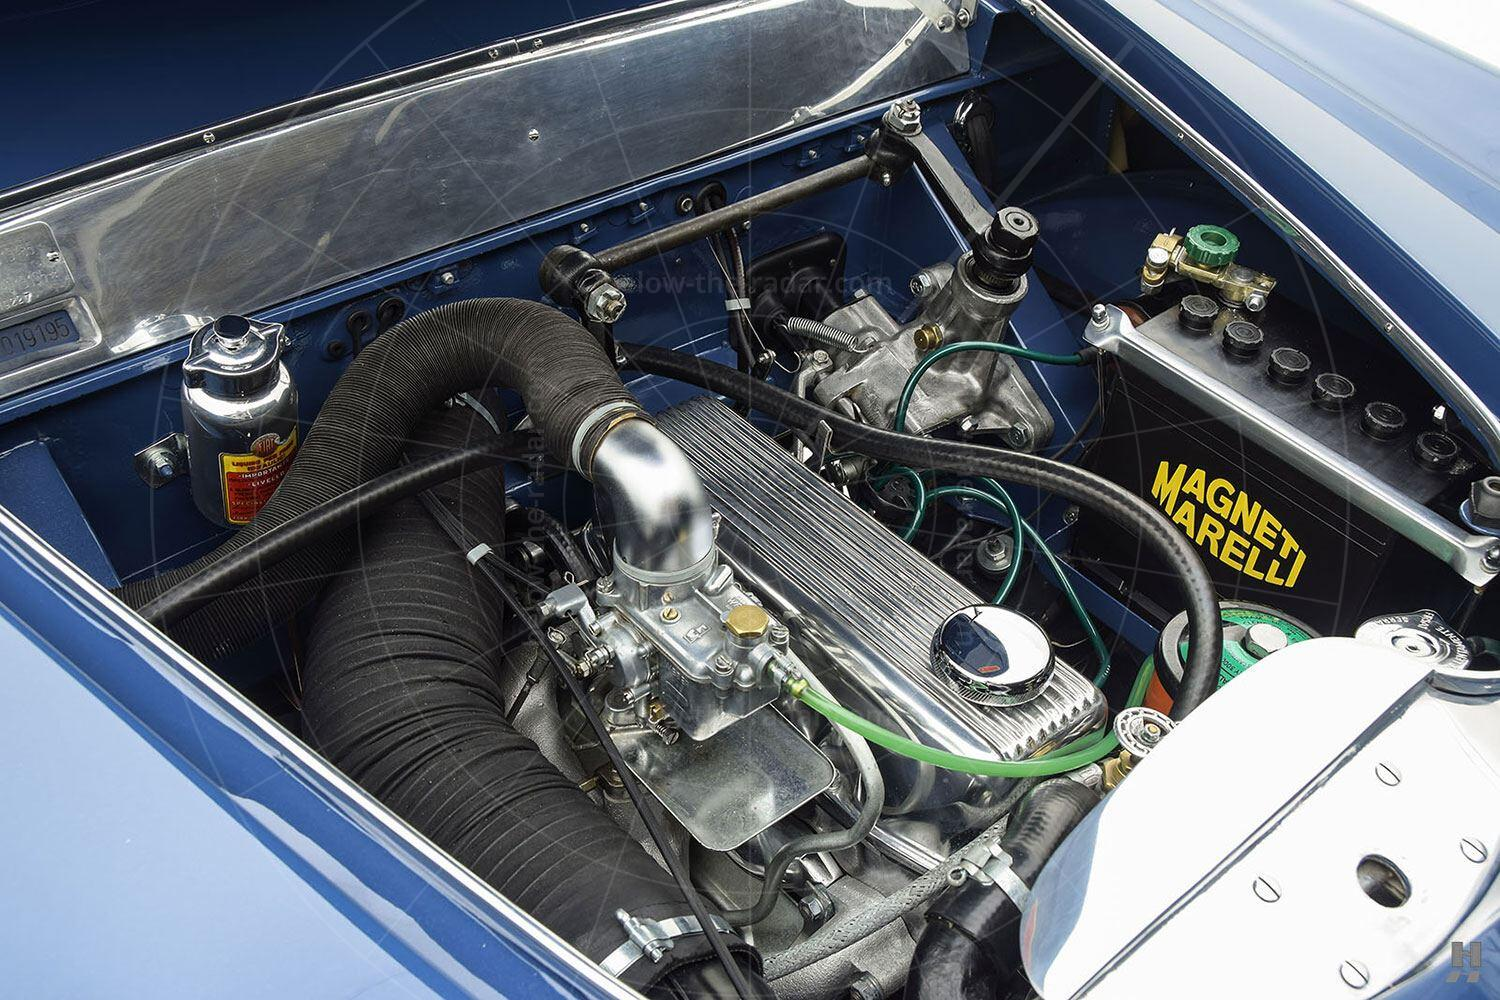 Fiat 1100 cabriolet by Allemano - engine bay Pic: Hyman Ltd | Fiat 1100 cabriolet by Allemano - engine bay